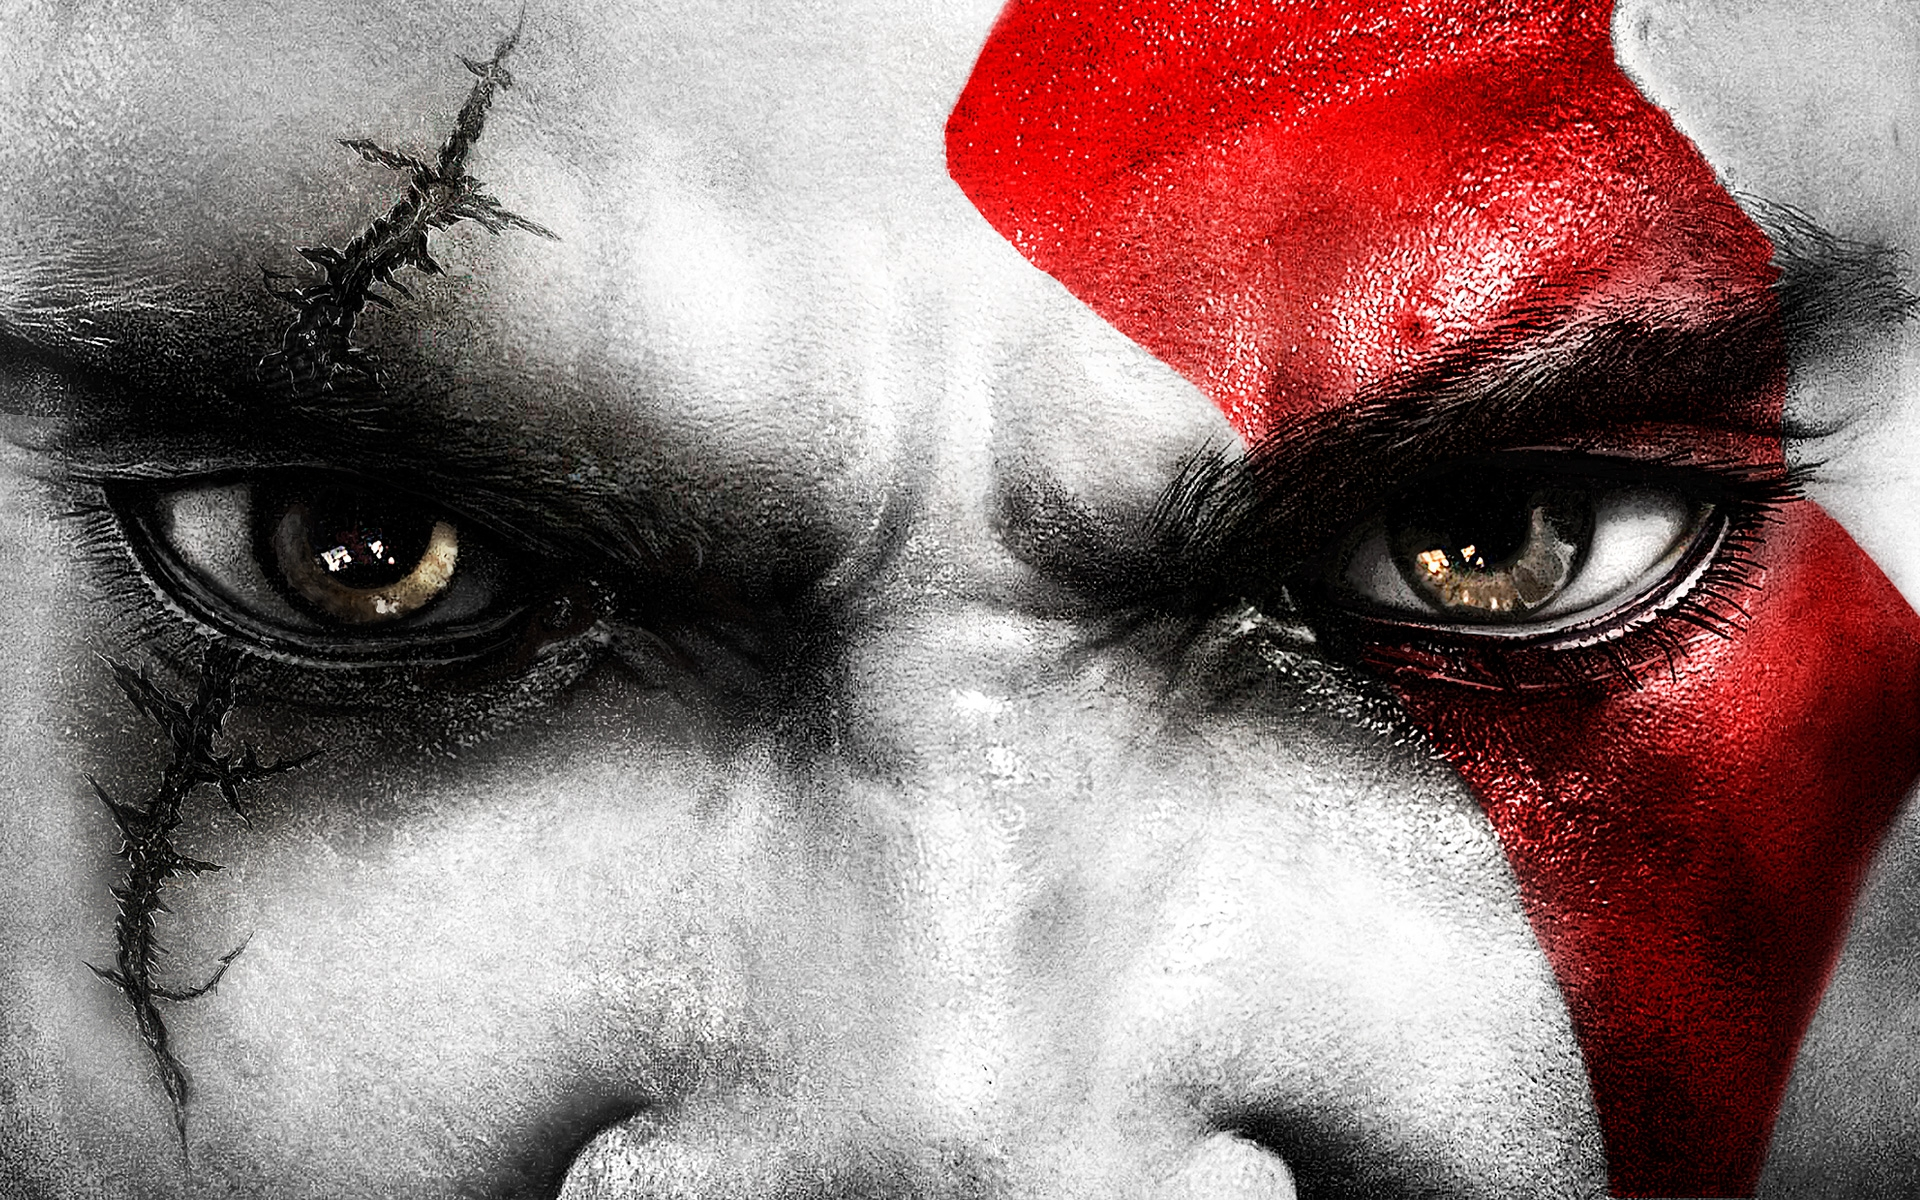 Kratos_Eyes_1920x1200_6452